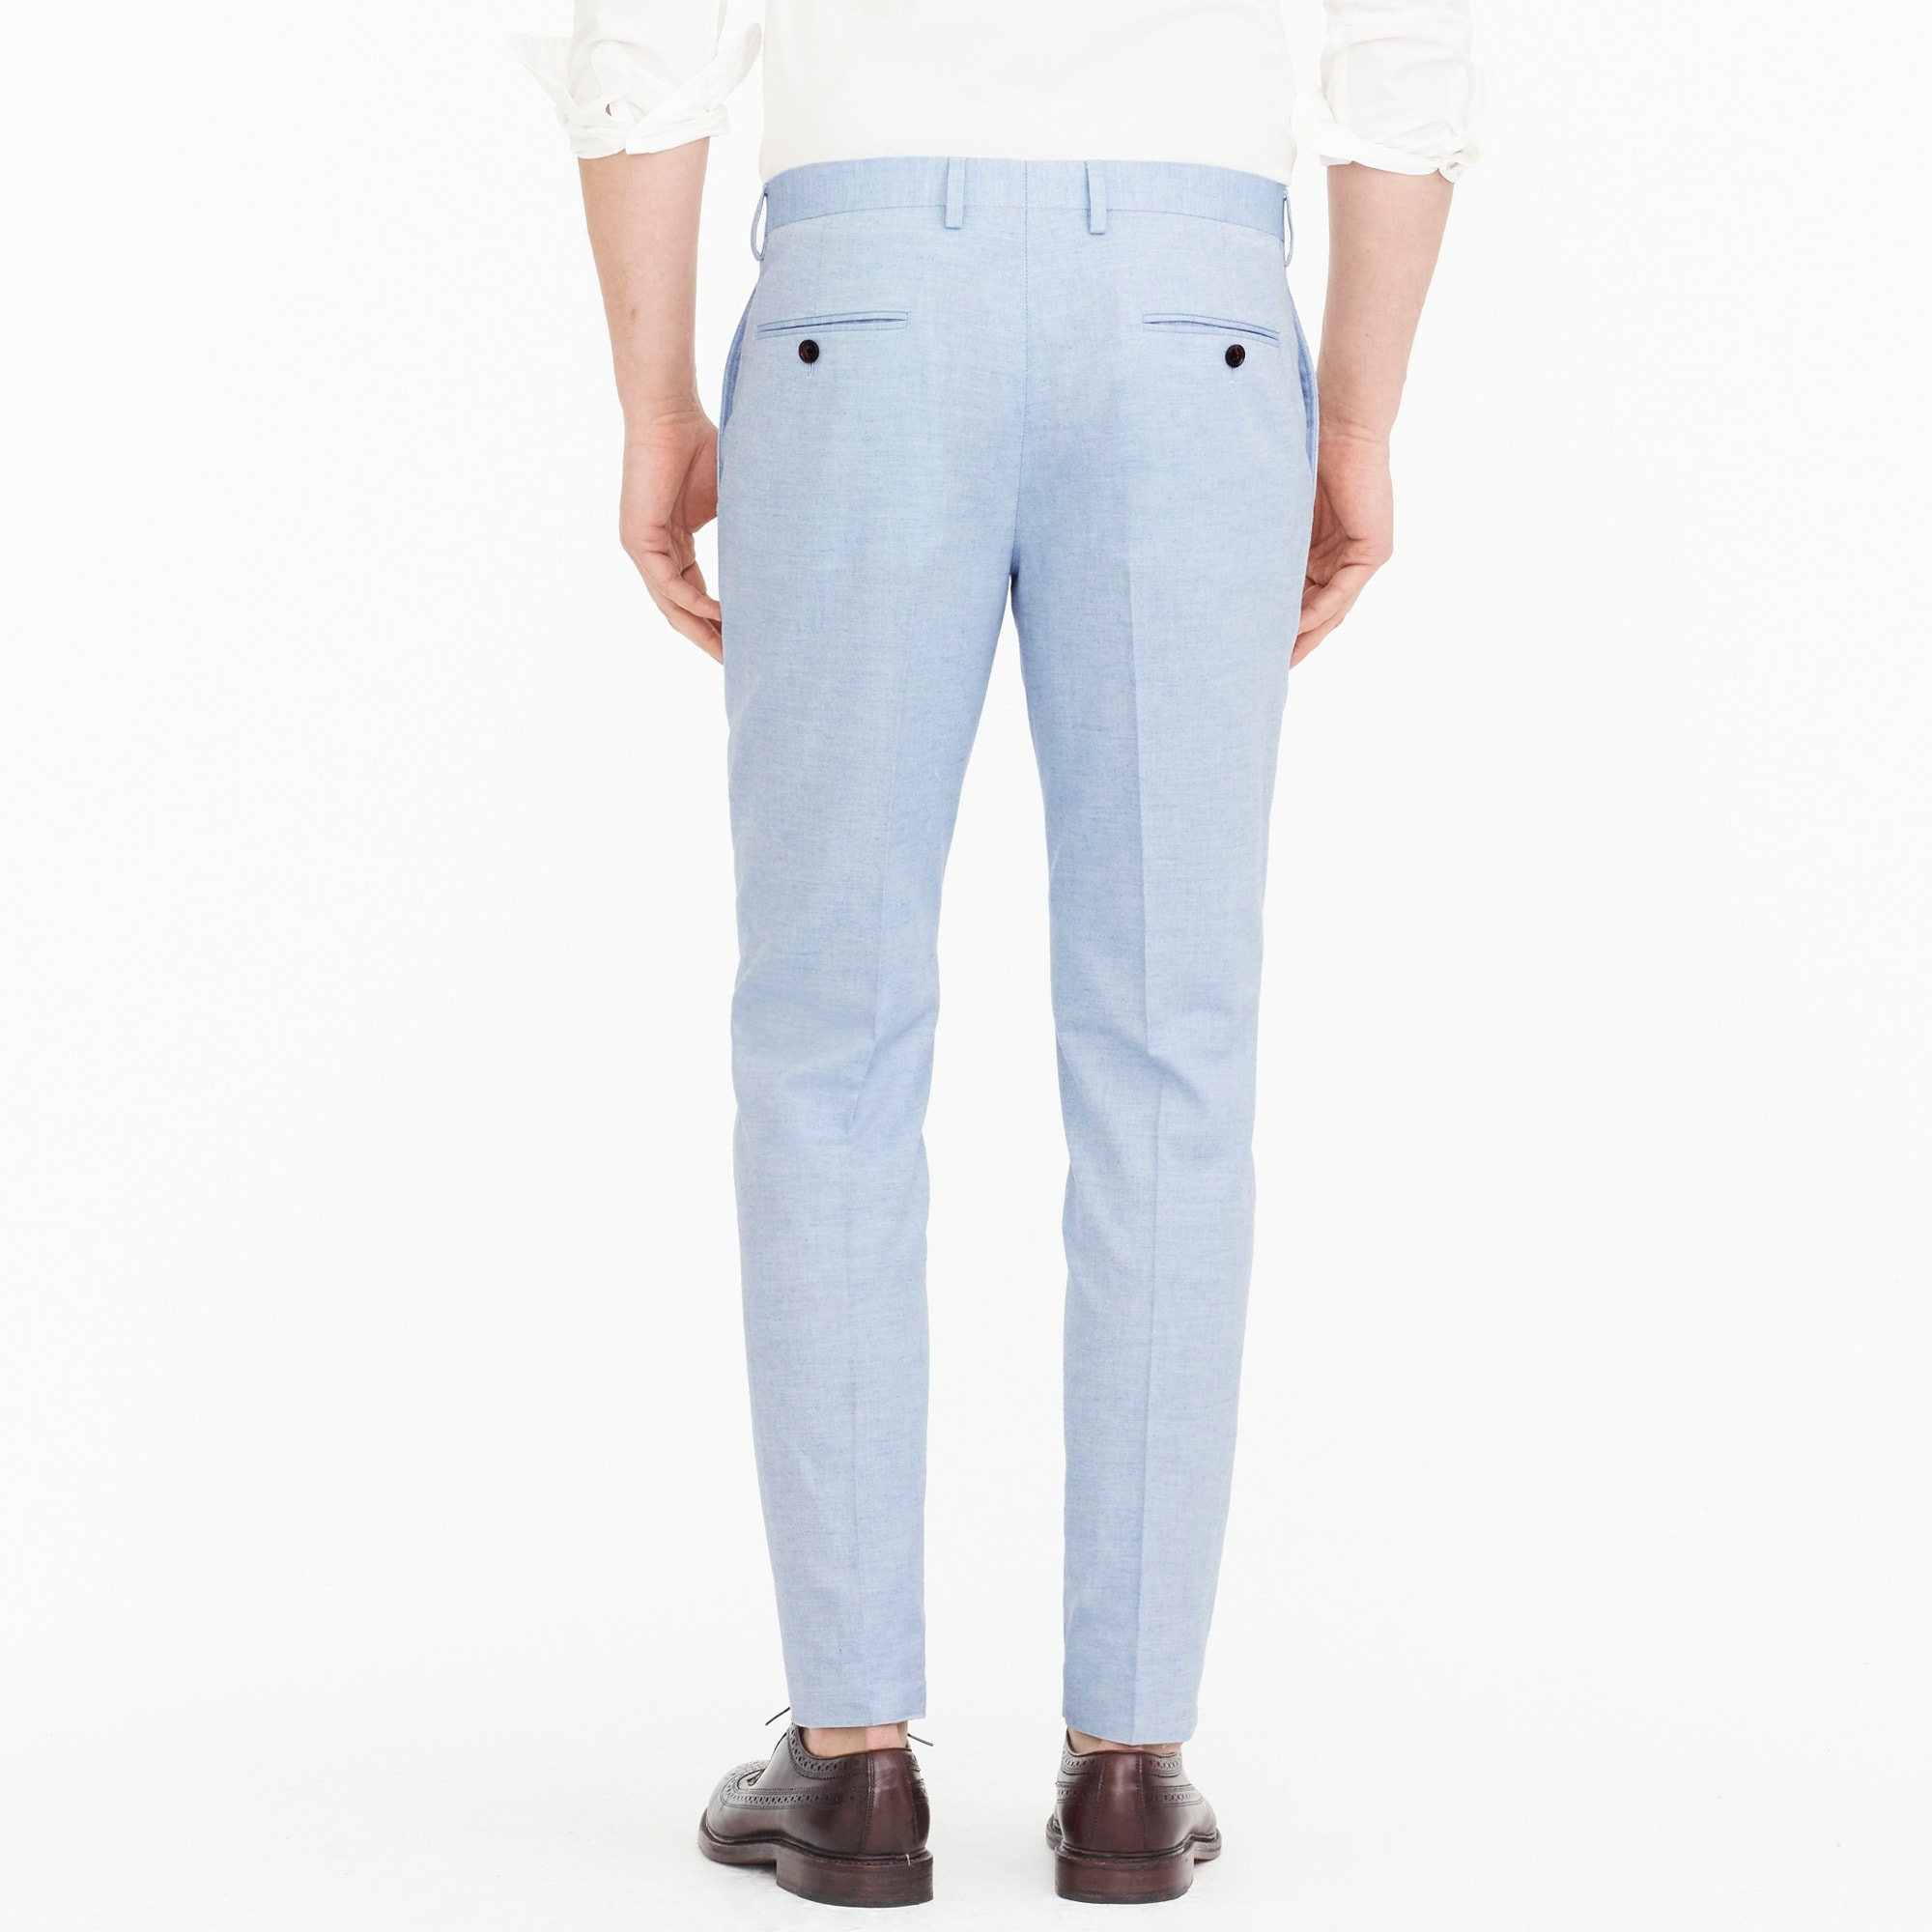 Image 3 for Ludlow Slim-fit suit pant in light blue American wool blend